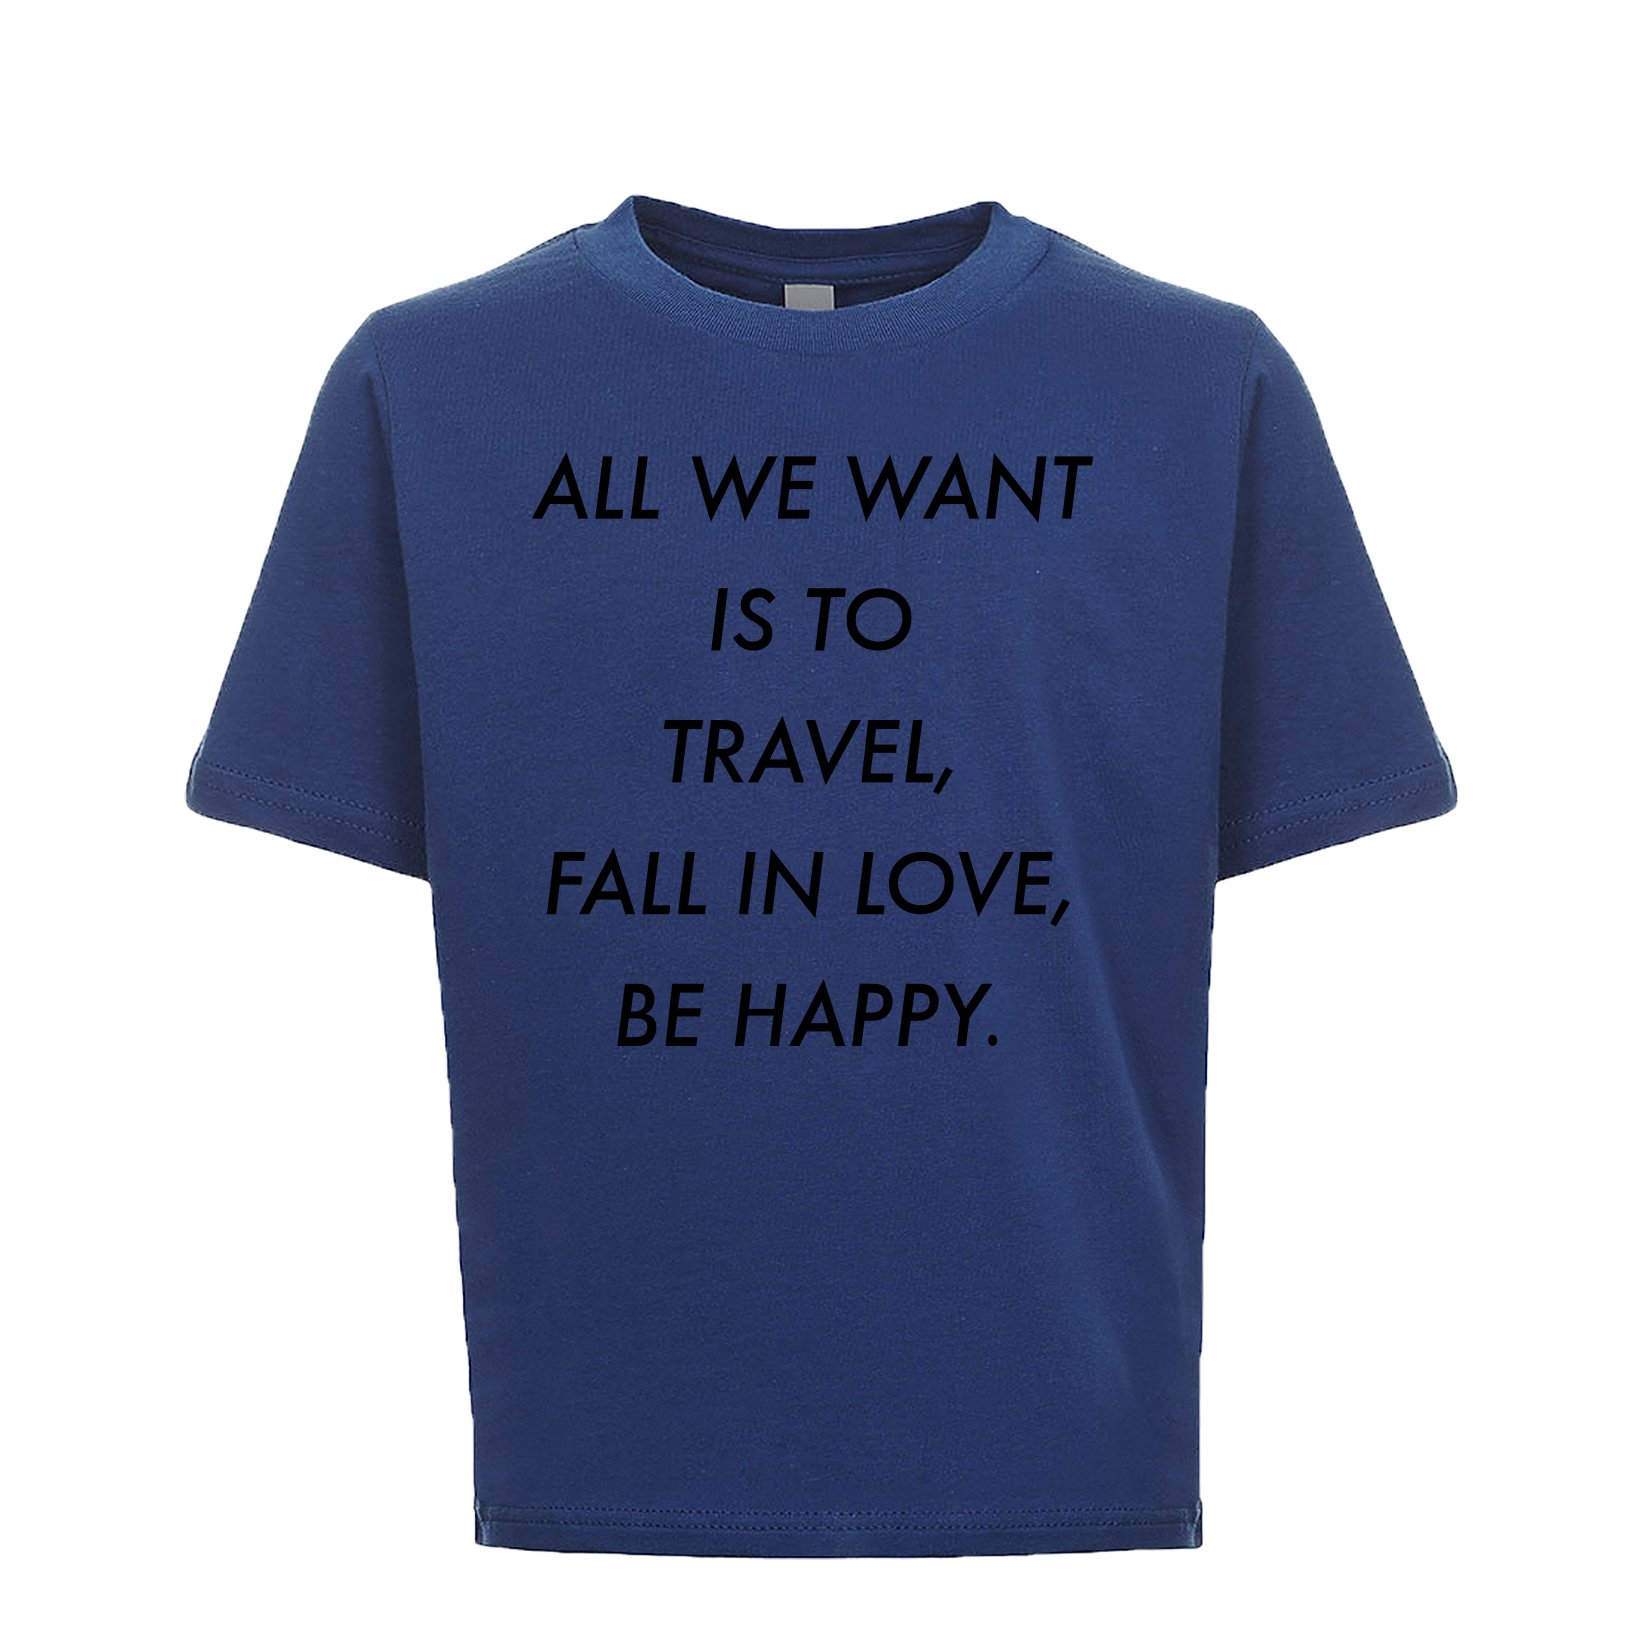 All We Want Is To Travel Fall In Love Be Happy Unisex Kids Tee Royal X-Large